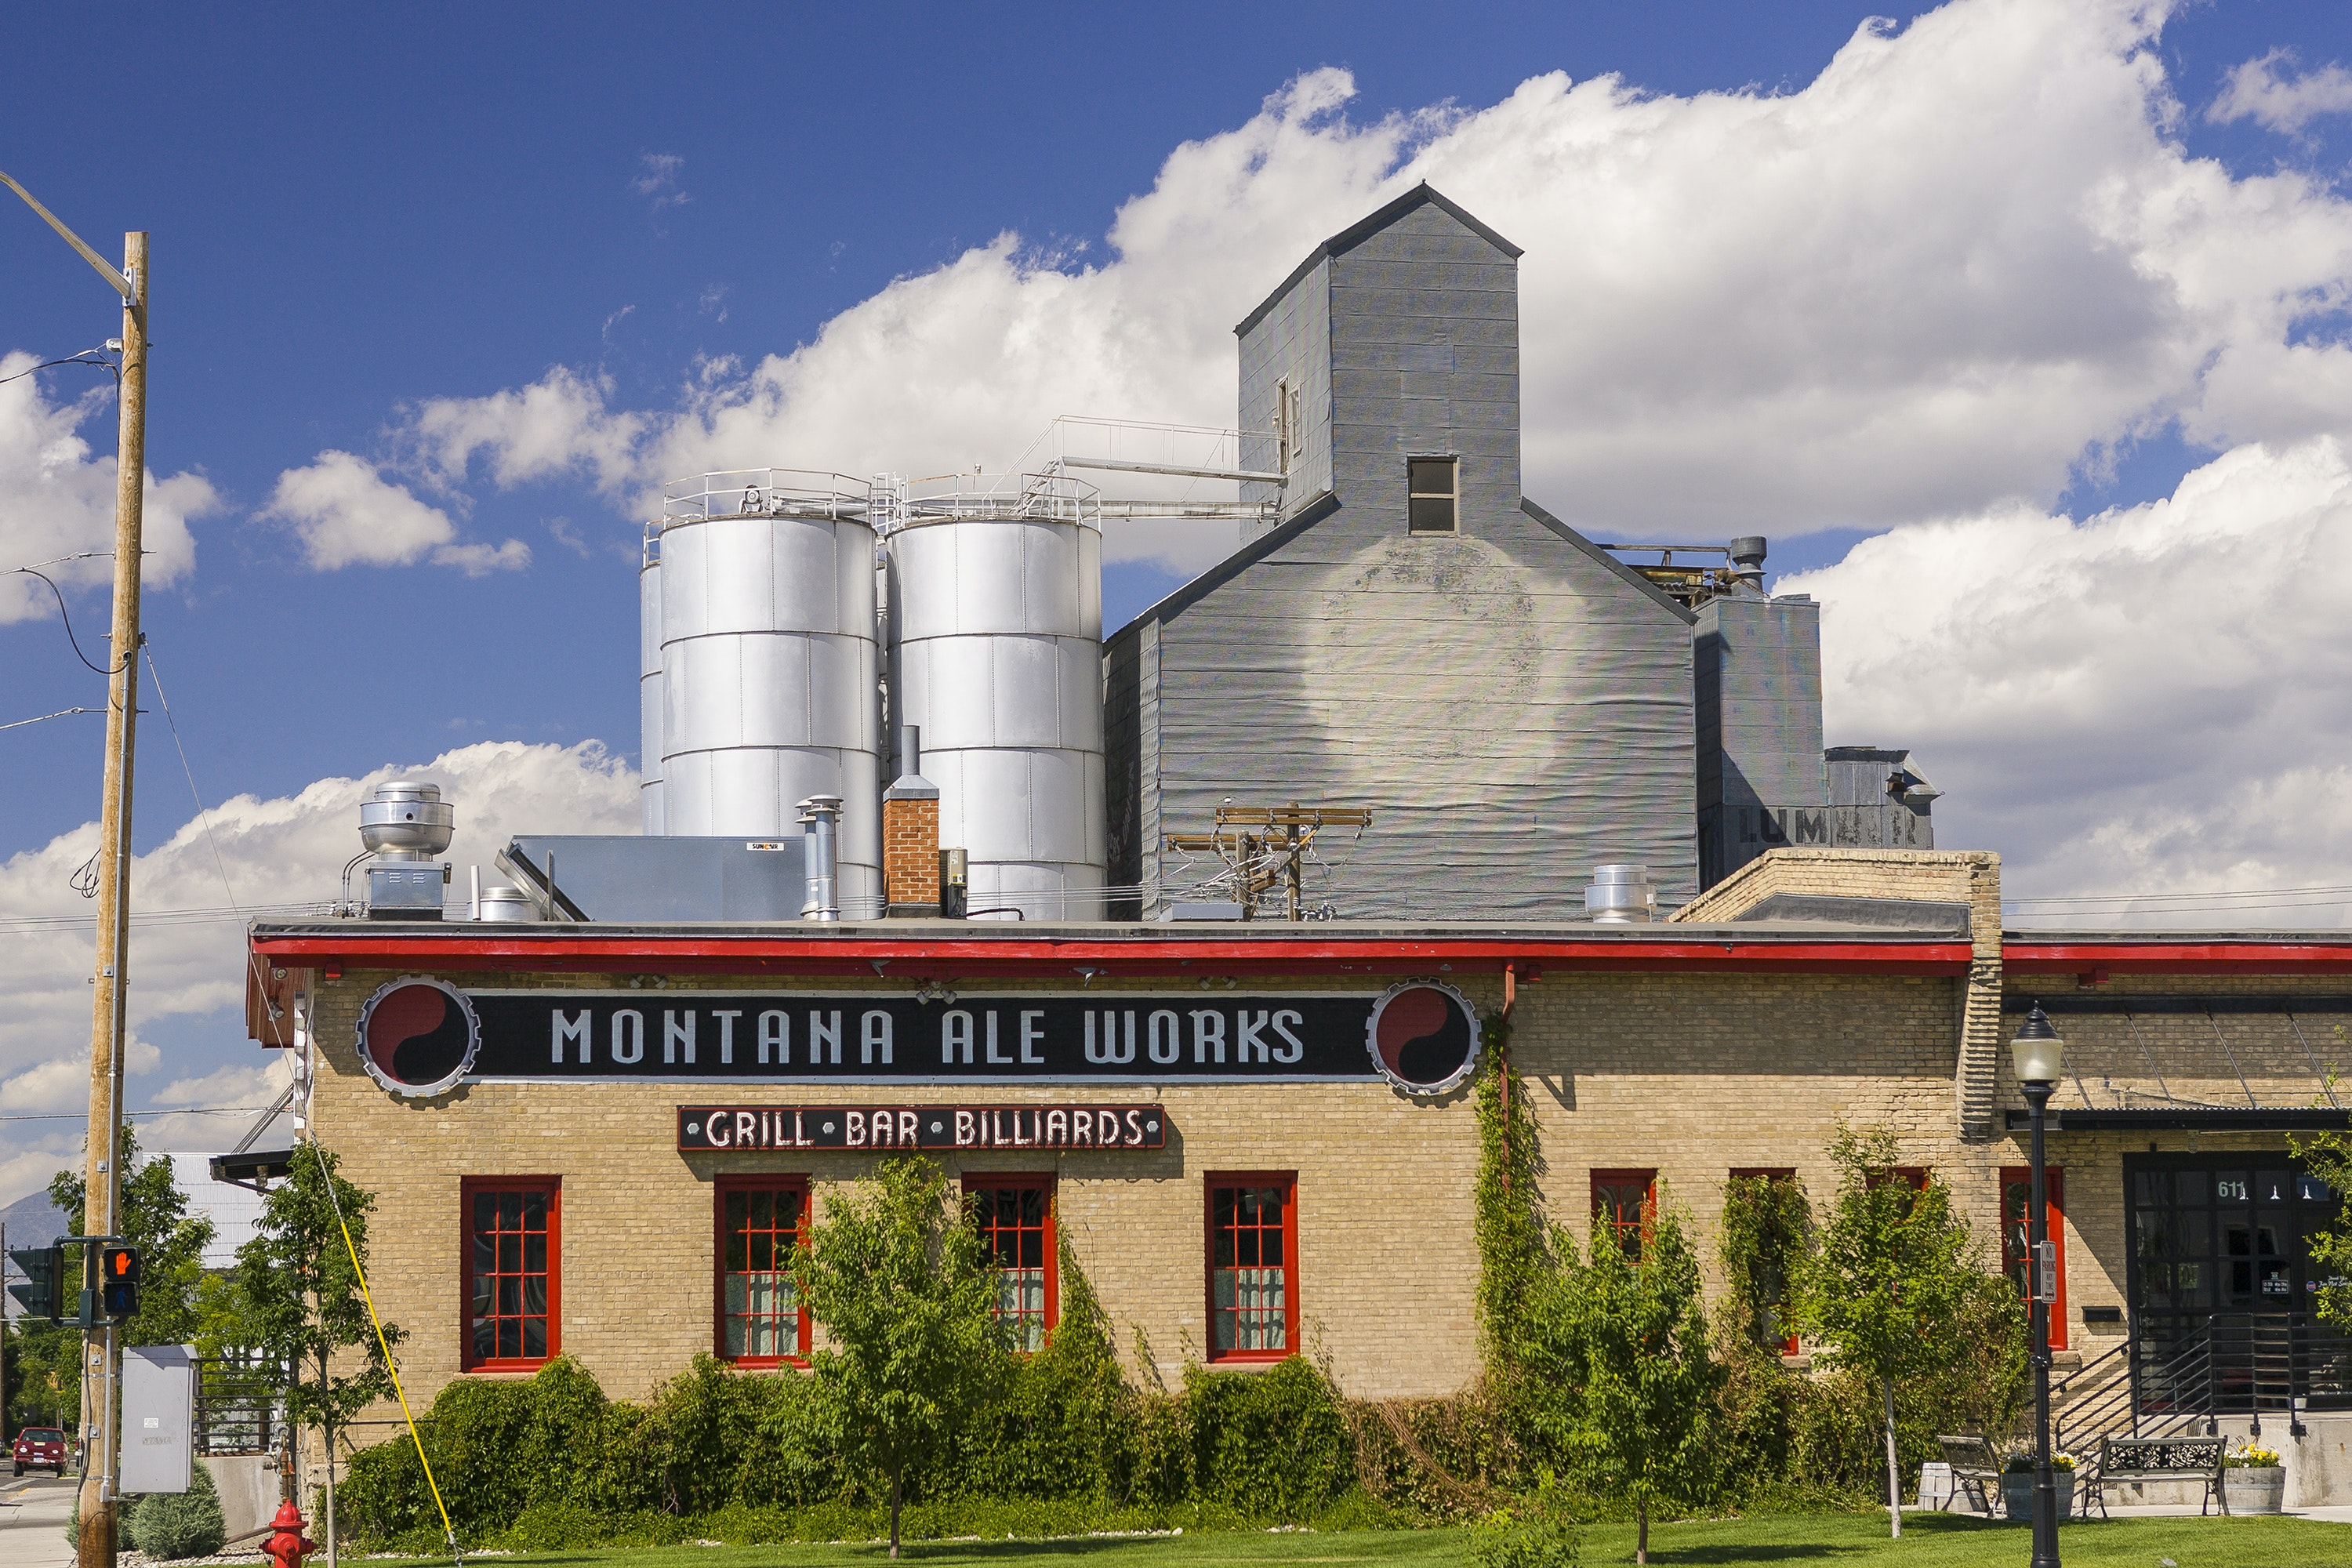 Bozeman has long been known as a beer town so it's no wonder one of its best restaurants is Montana Ale Works.